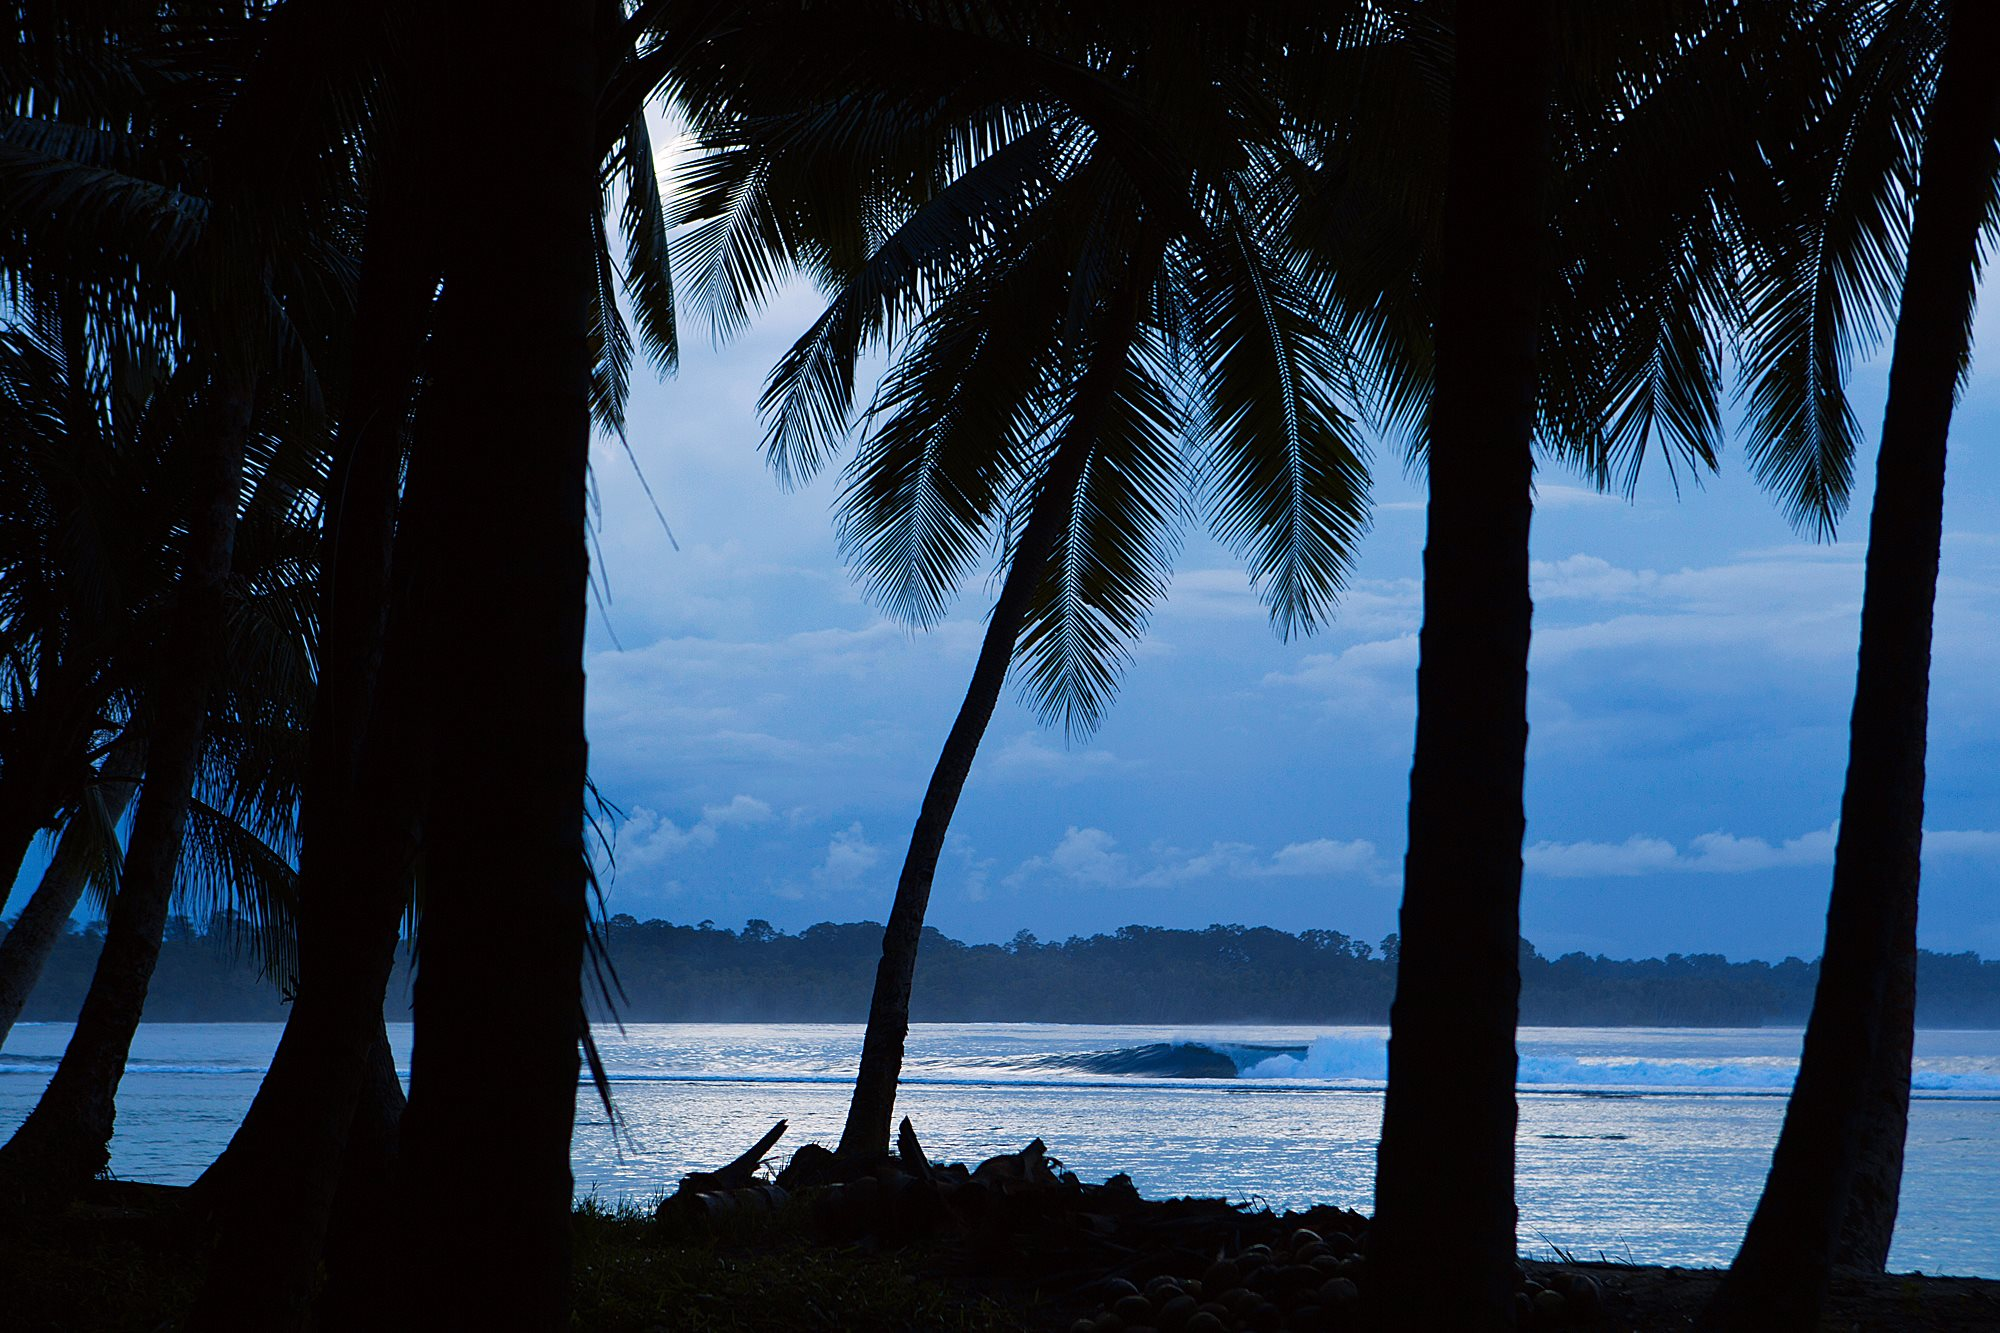 Telo_Island_Lodge_Surf_Indonesia Right Barrel Trees.jpg